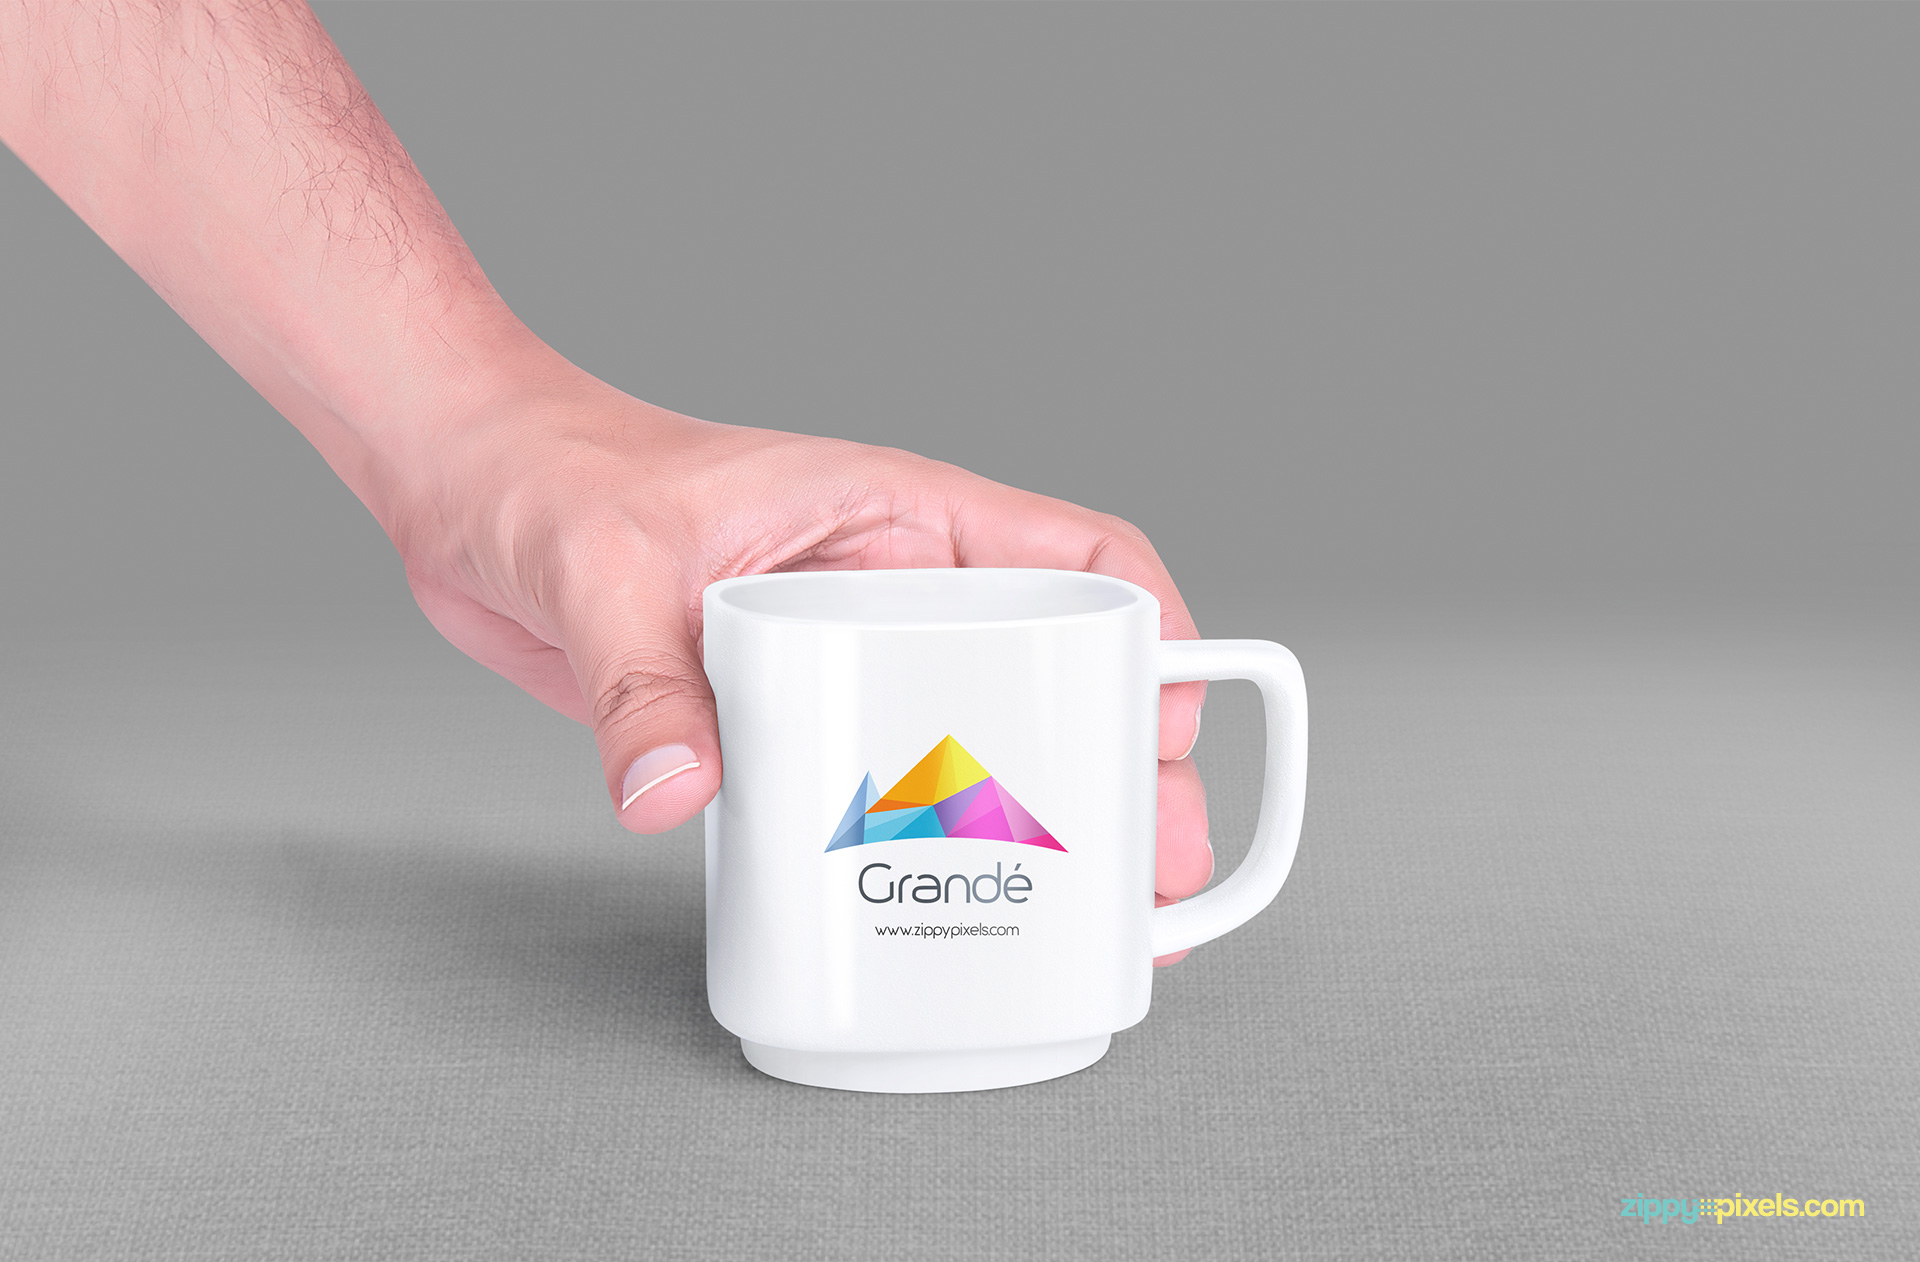 Free mug mock up with 7 handheld positions.